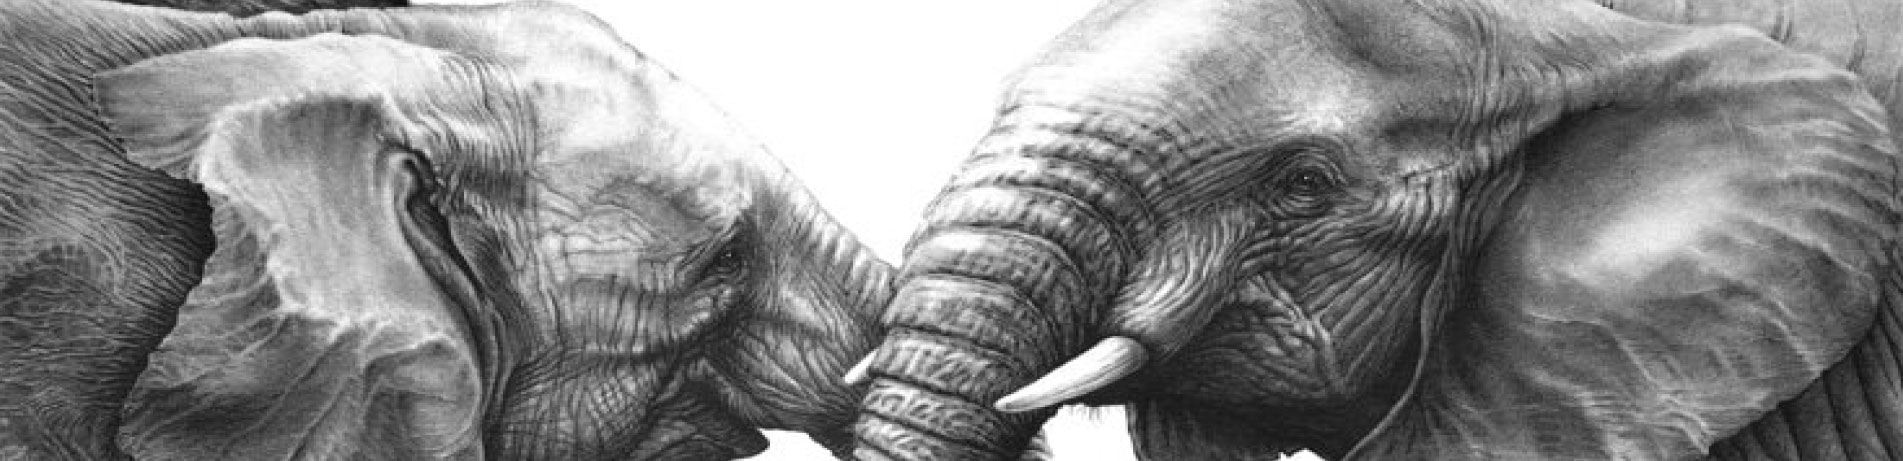 Print of two elephants, Gary Hodges